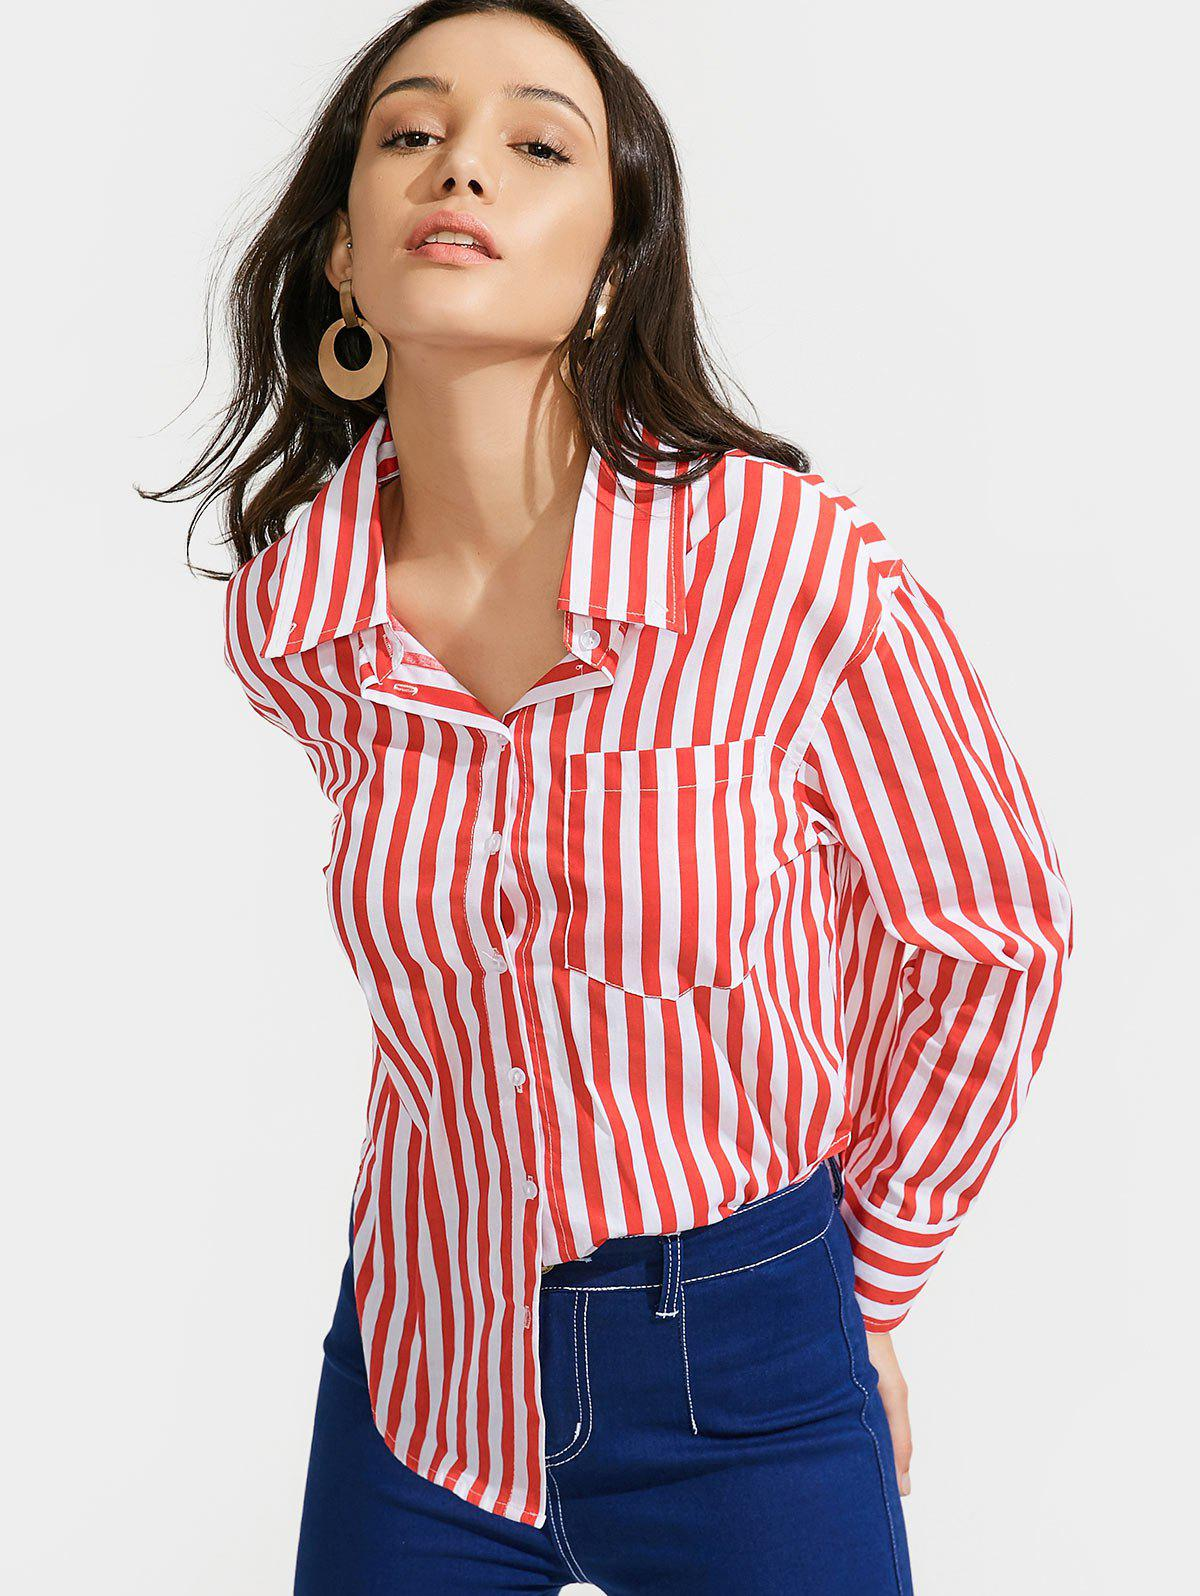 High Low Stripes Shirt with Pocket 221895901